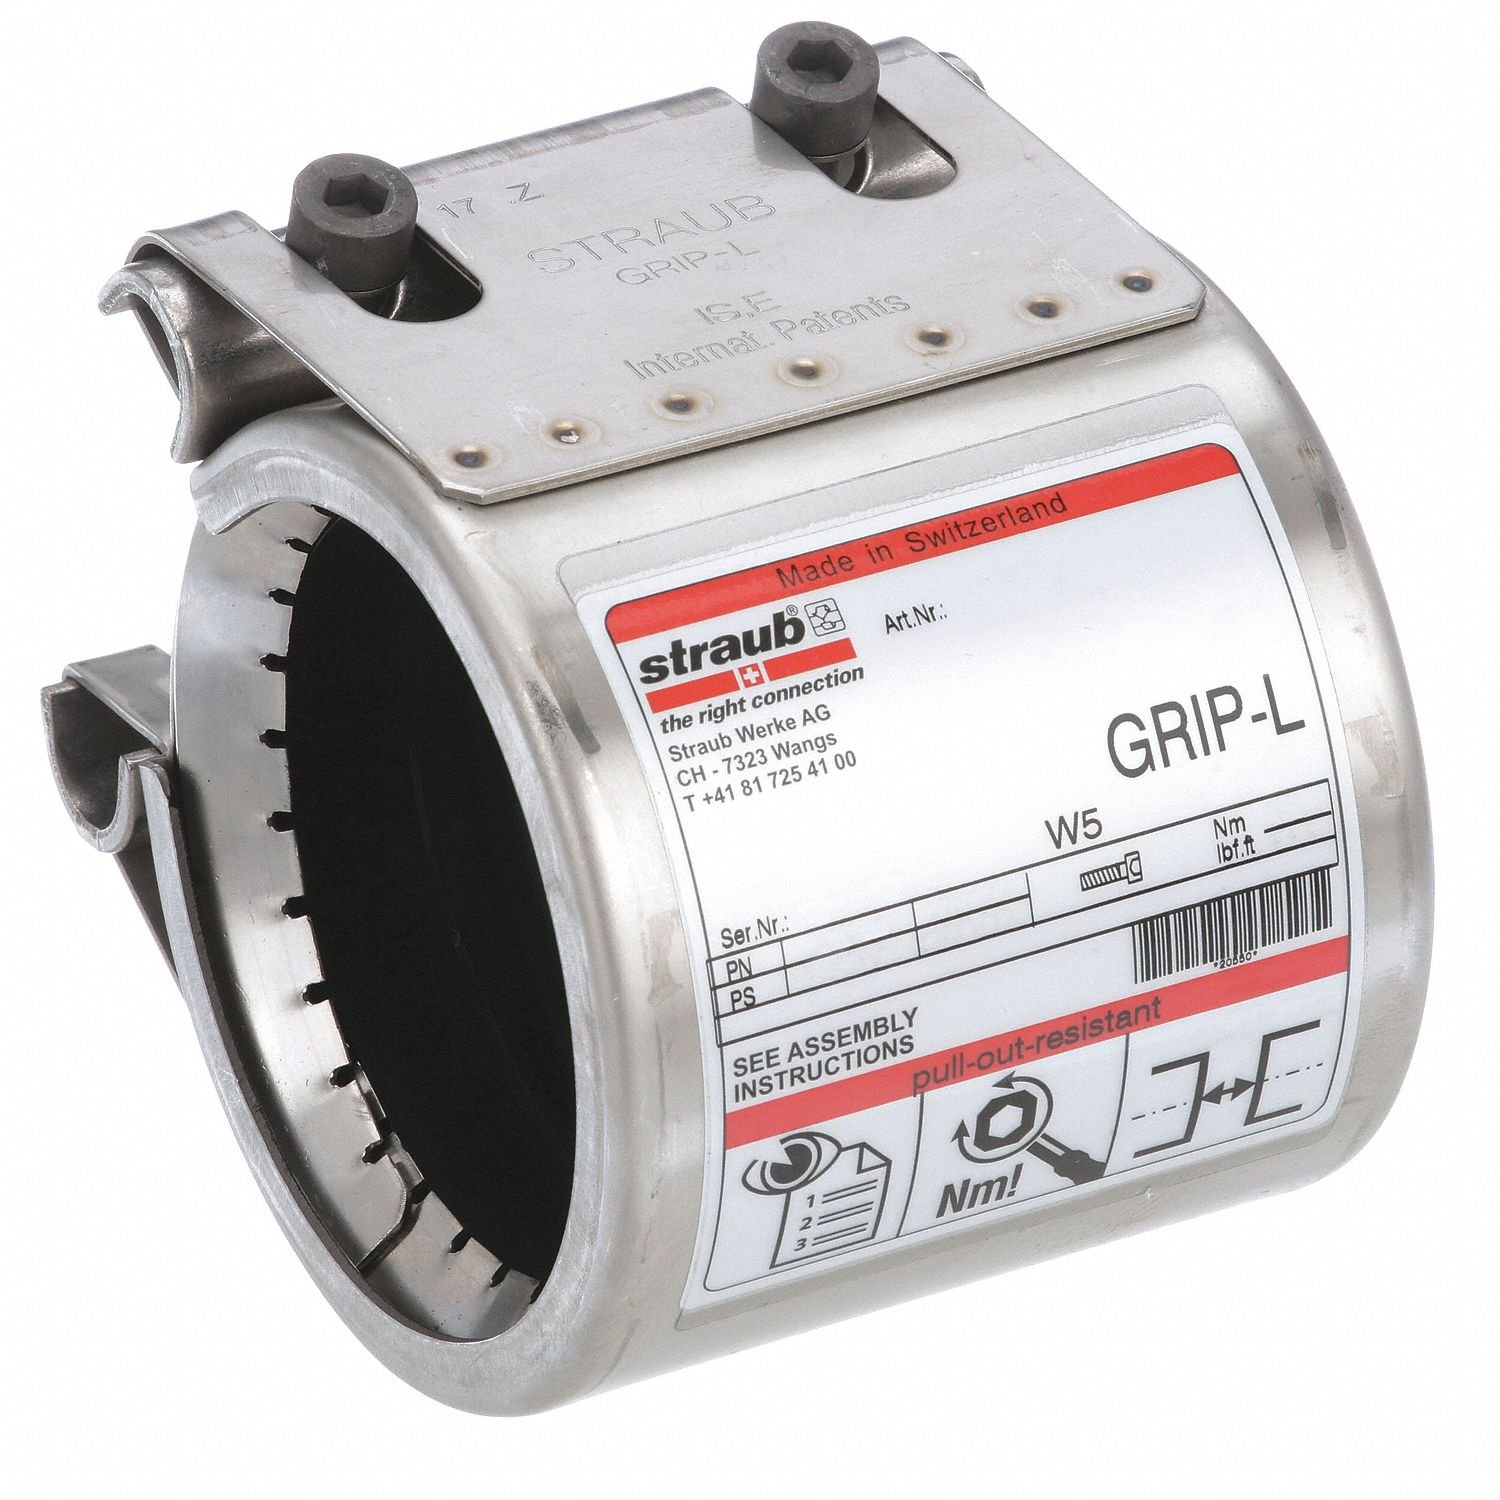 Straub Pipe Coupling, 3'' Pipe Size, 316 Stainless Steel